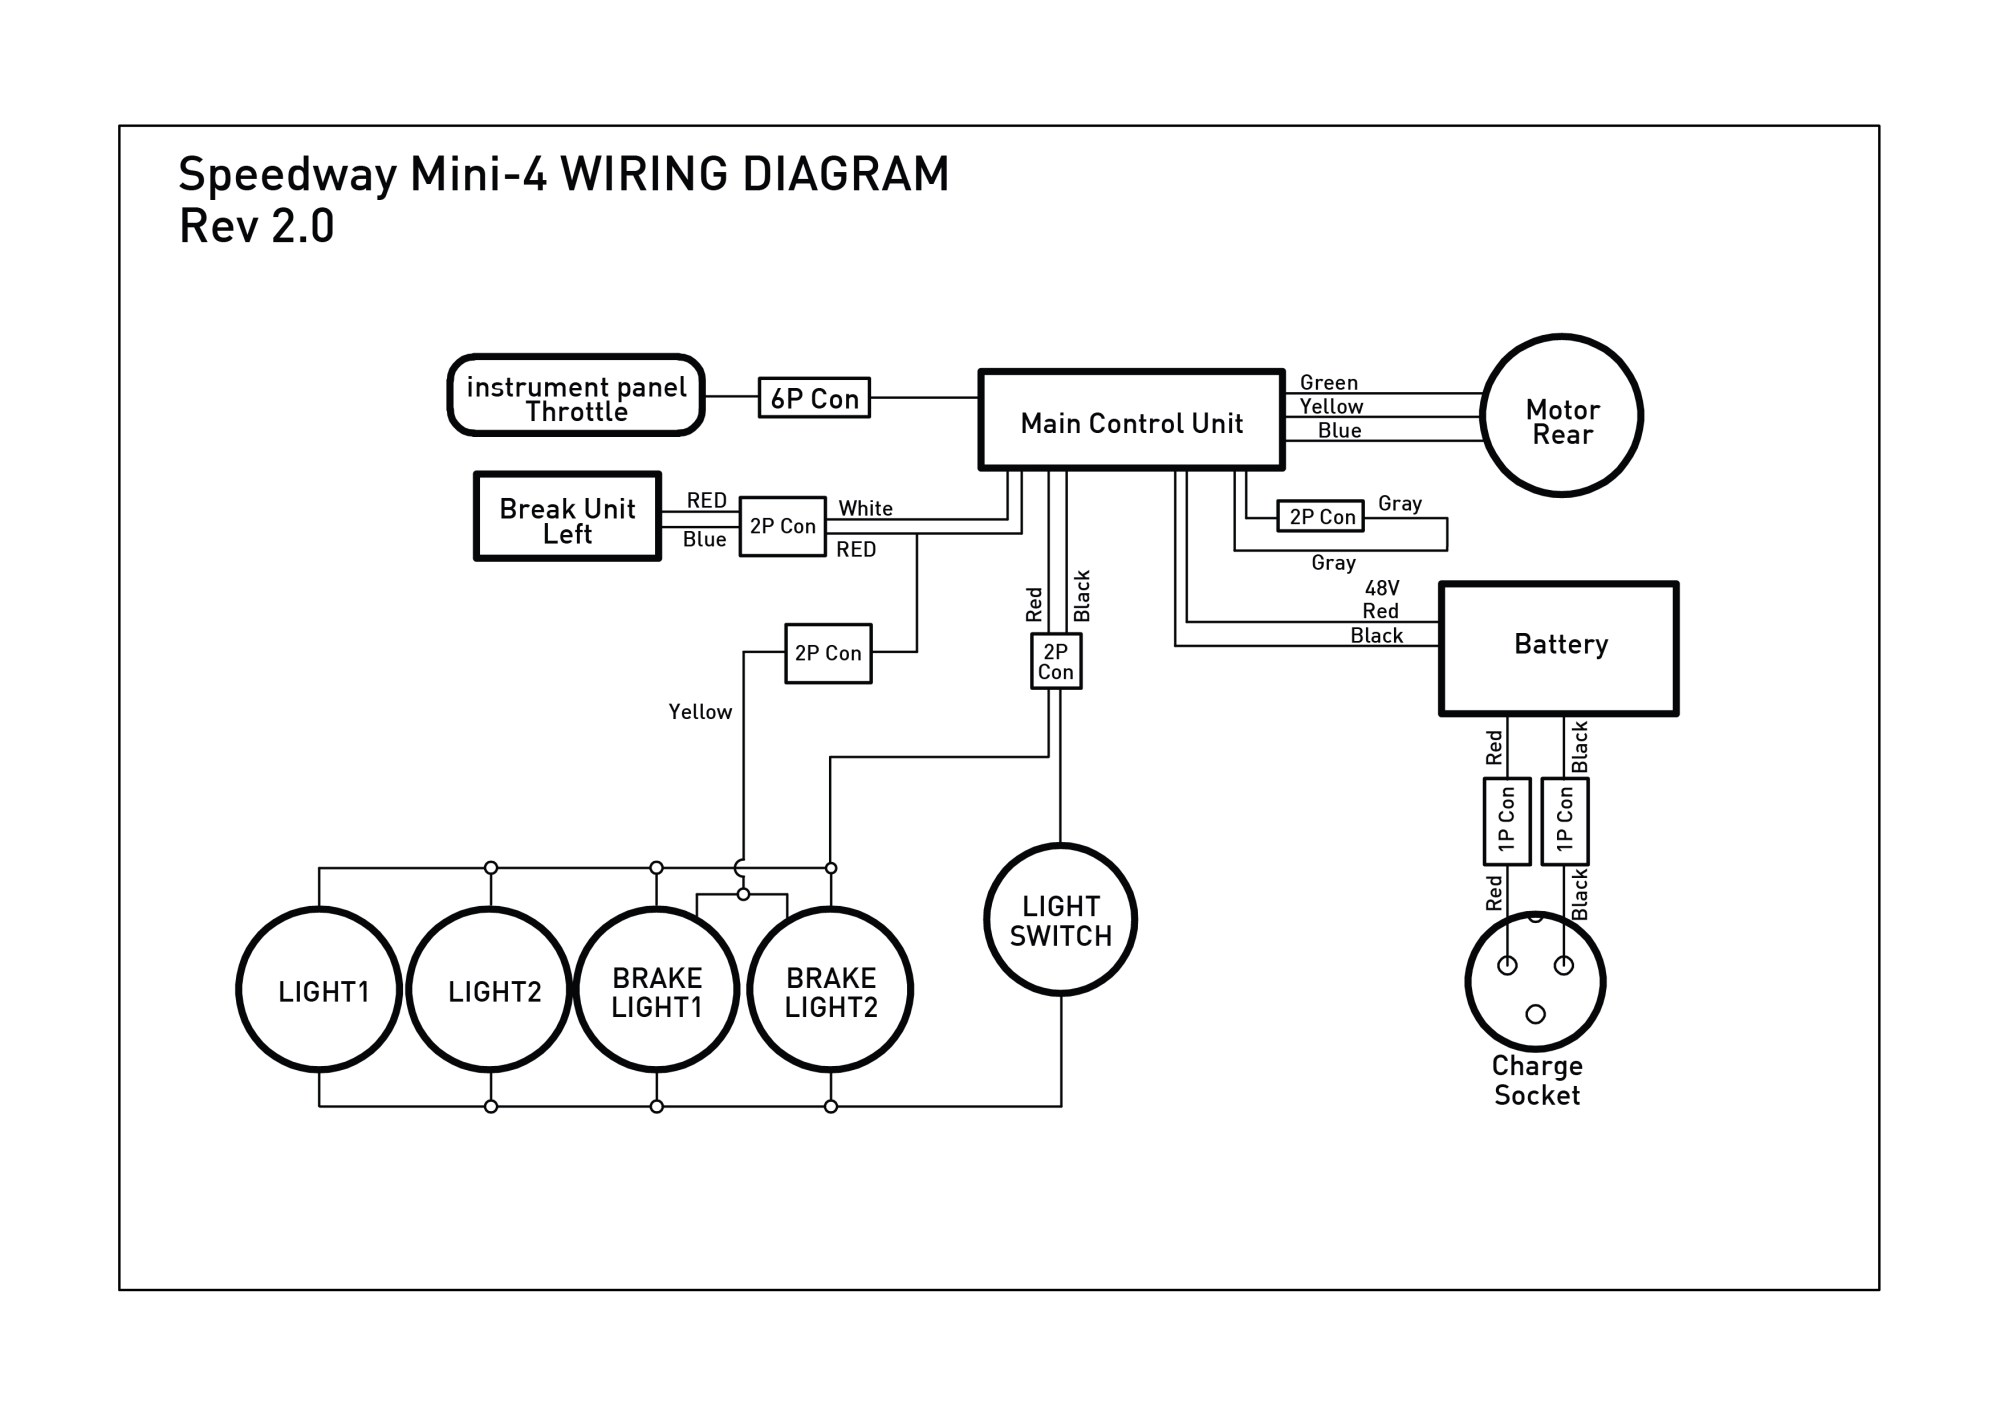 hight resolution of mini4 wiring diagram